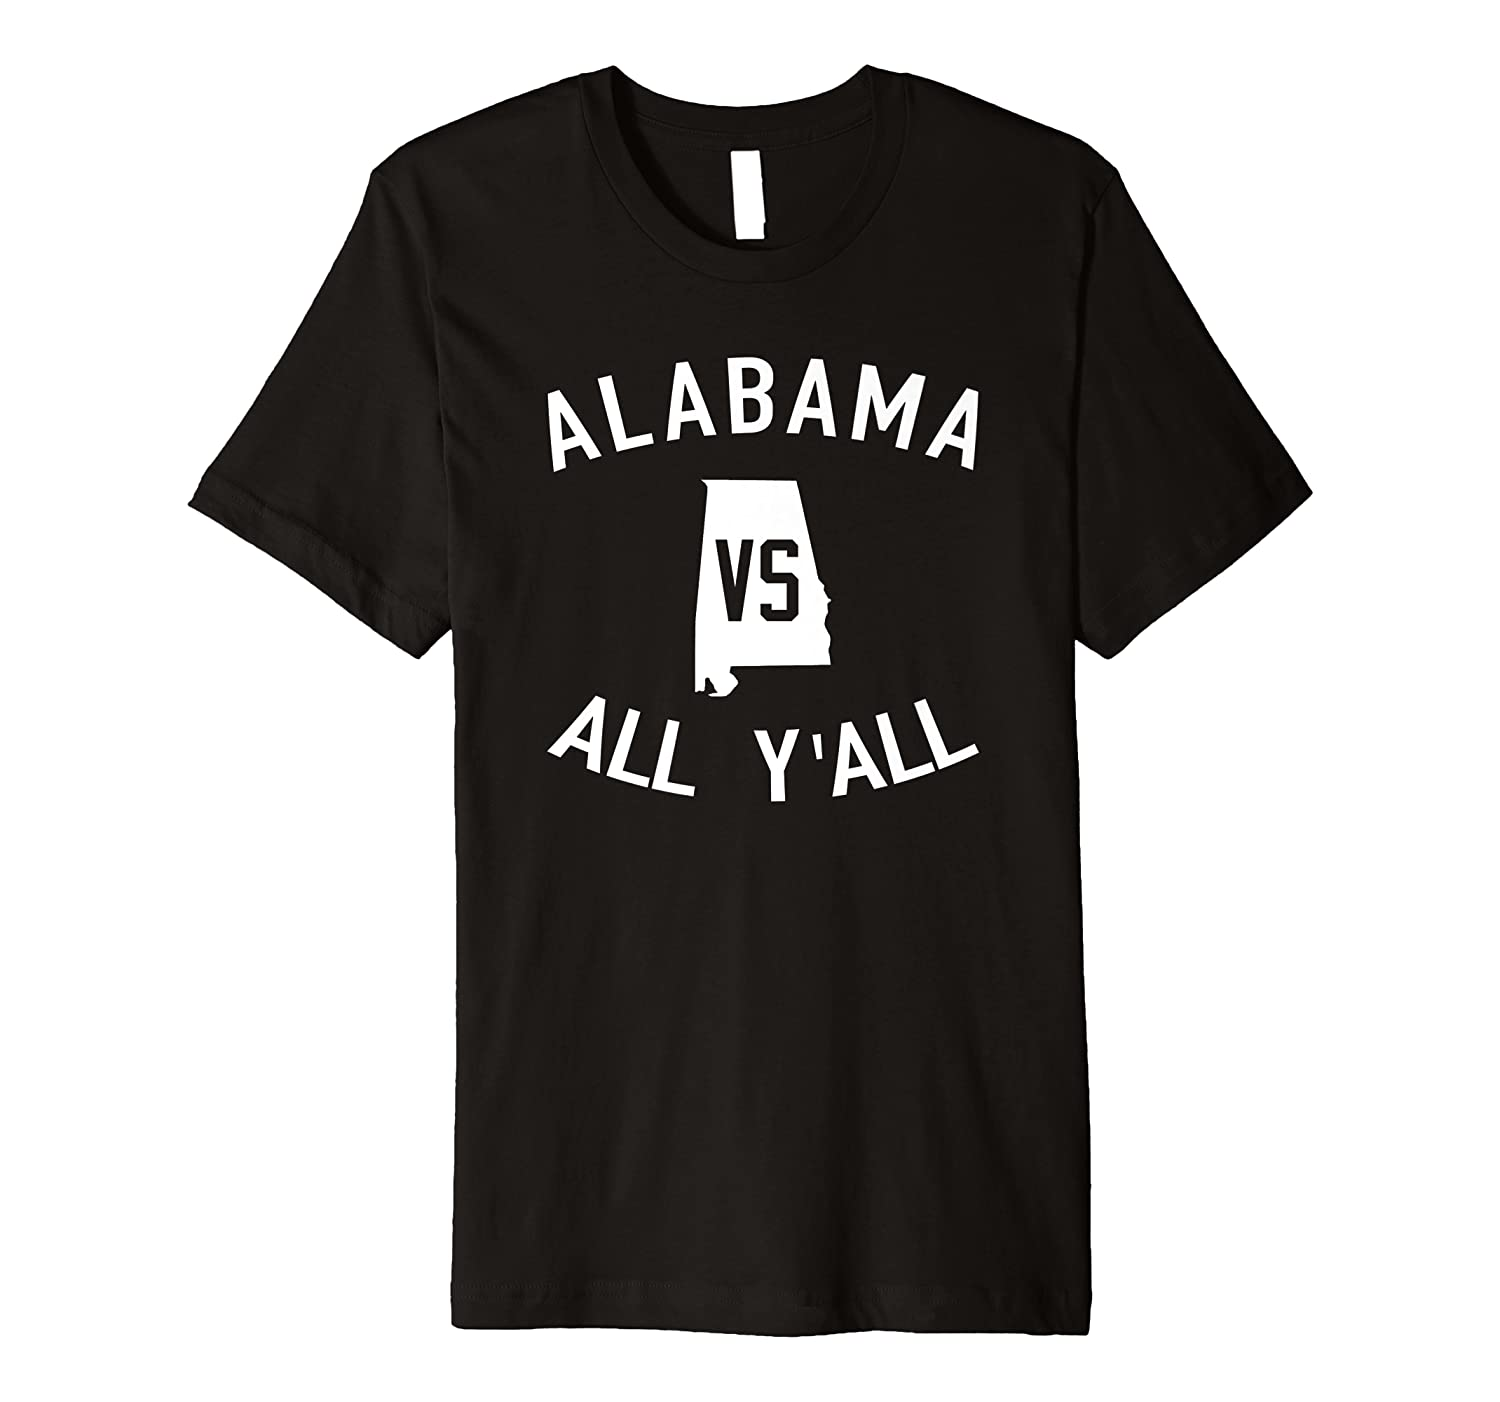 Alabama Vs All Y'all Funny Alabama T-Shirt